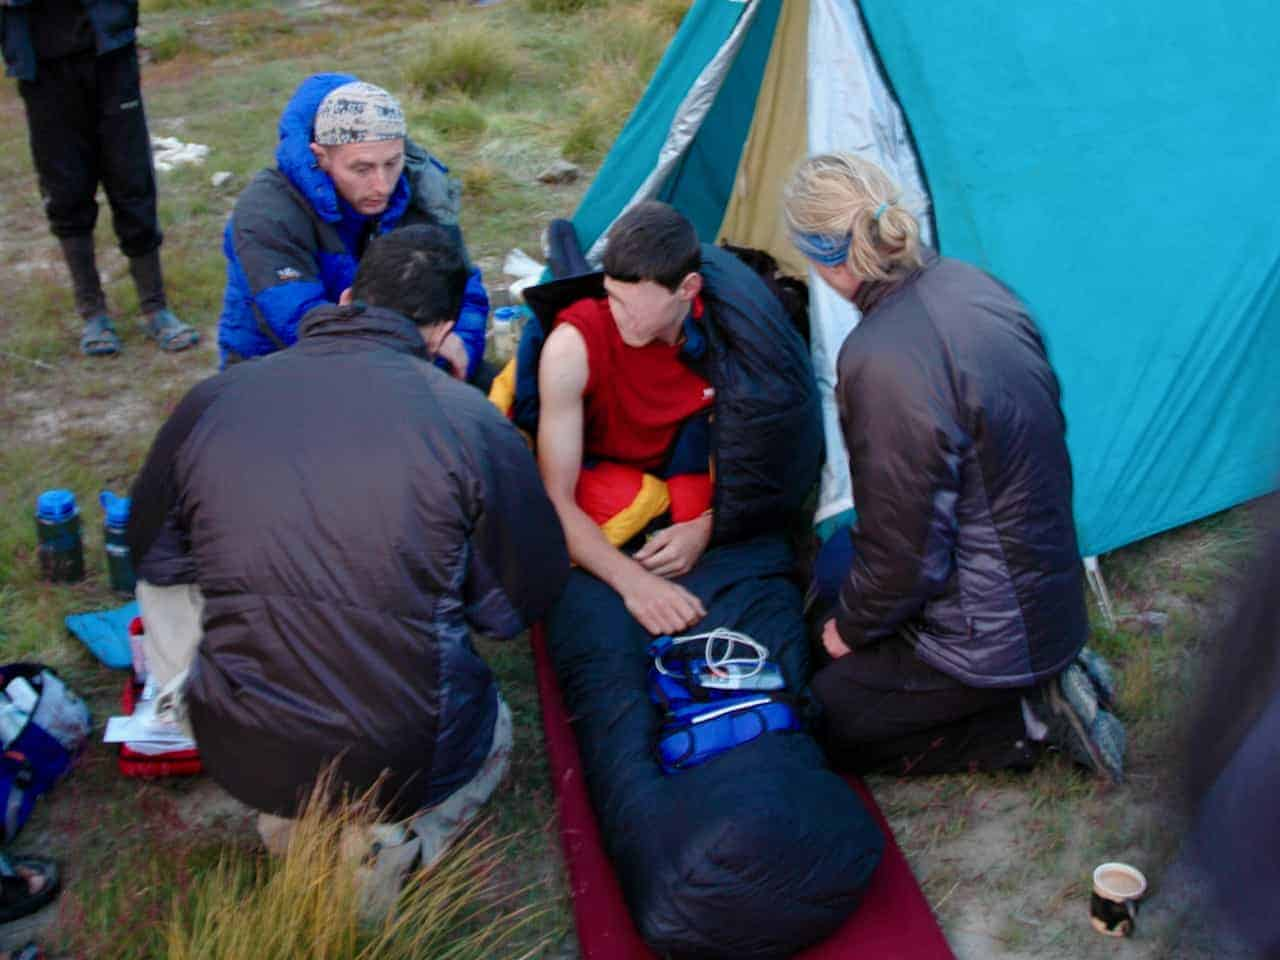 An expedition group gives first aid to a casualty after being on a first aid course in the Peak District